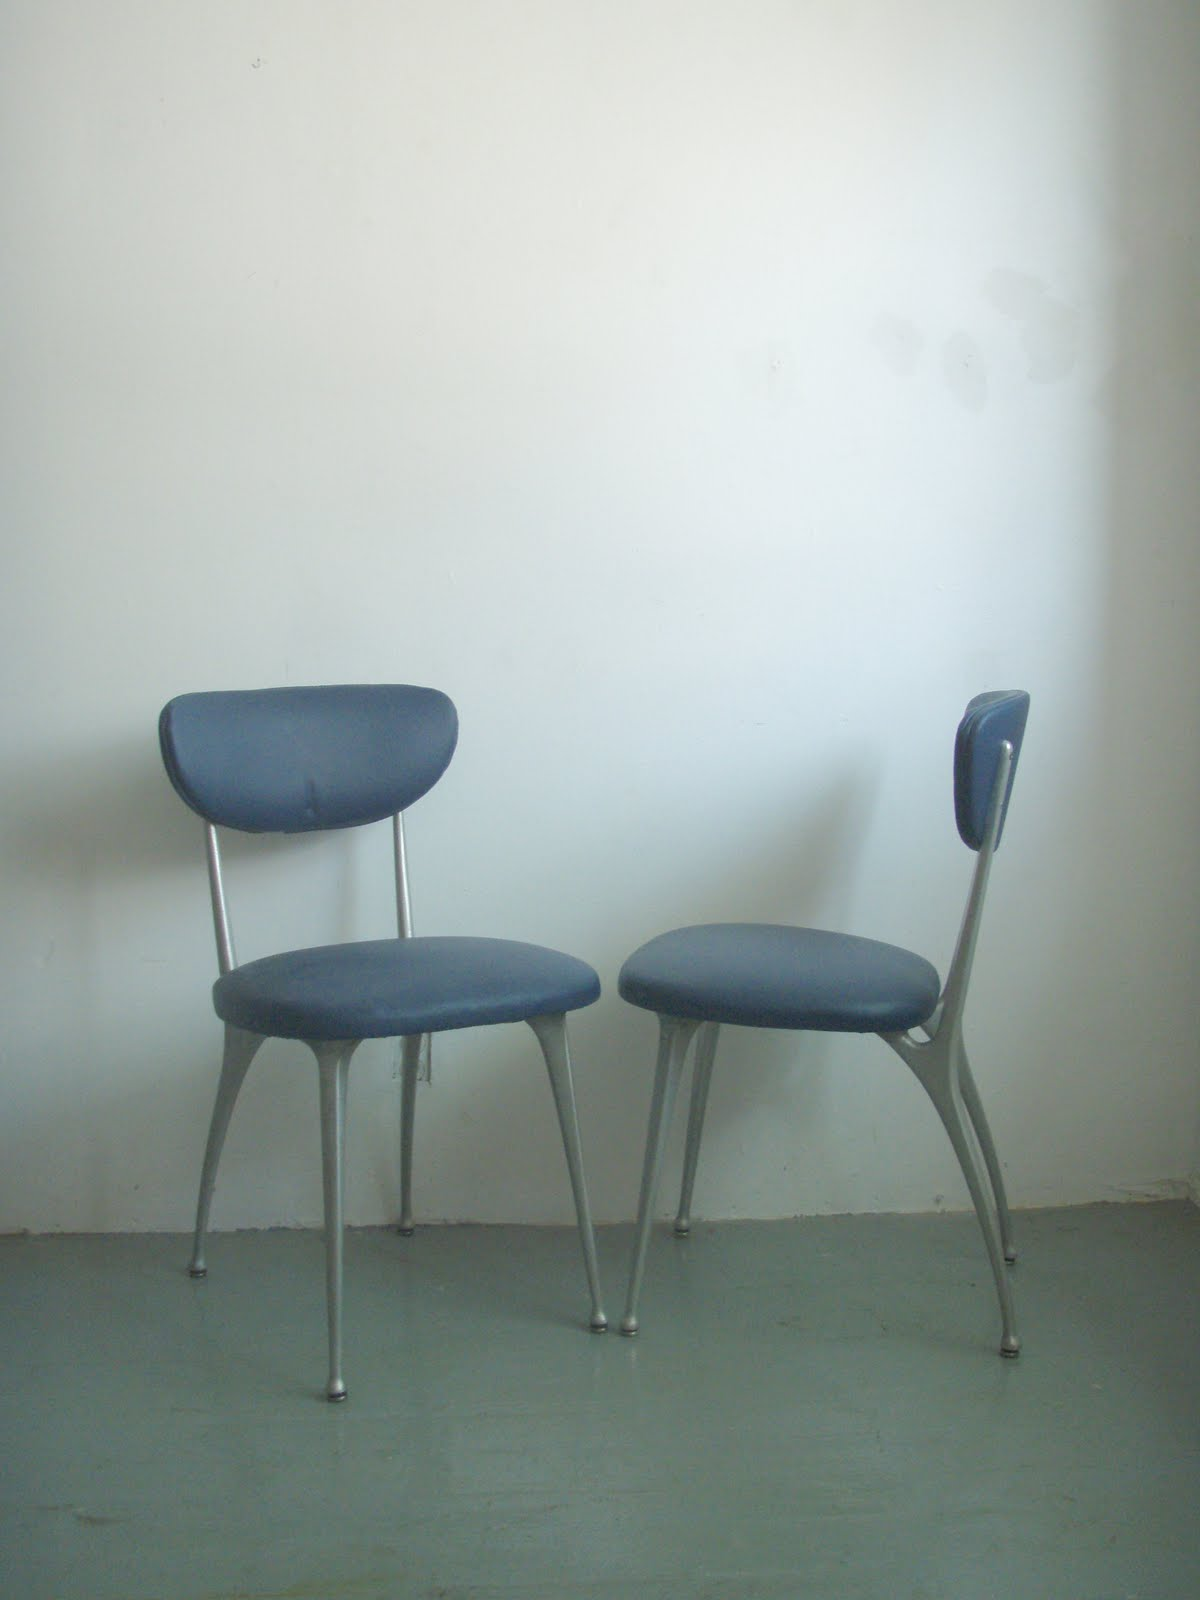 Great Pair Of Mid Century Dining Desk Chairs They Have Been Reupholstered In Navy Blue Naughahyde These Were Up On The Blog Ages Ago But Just